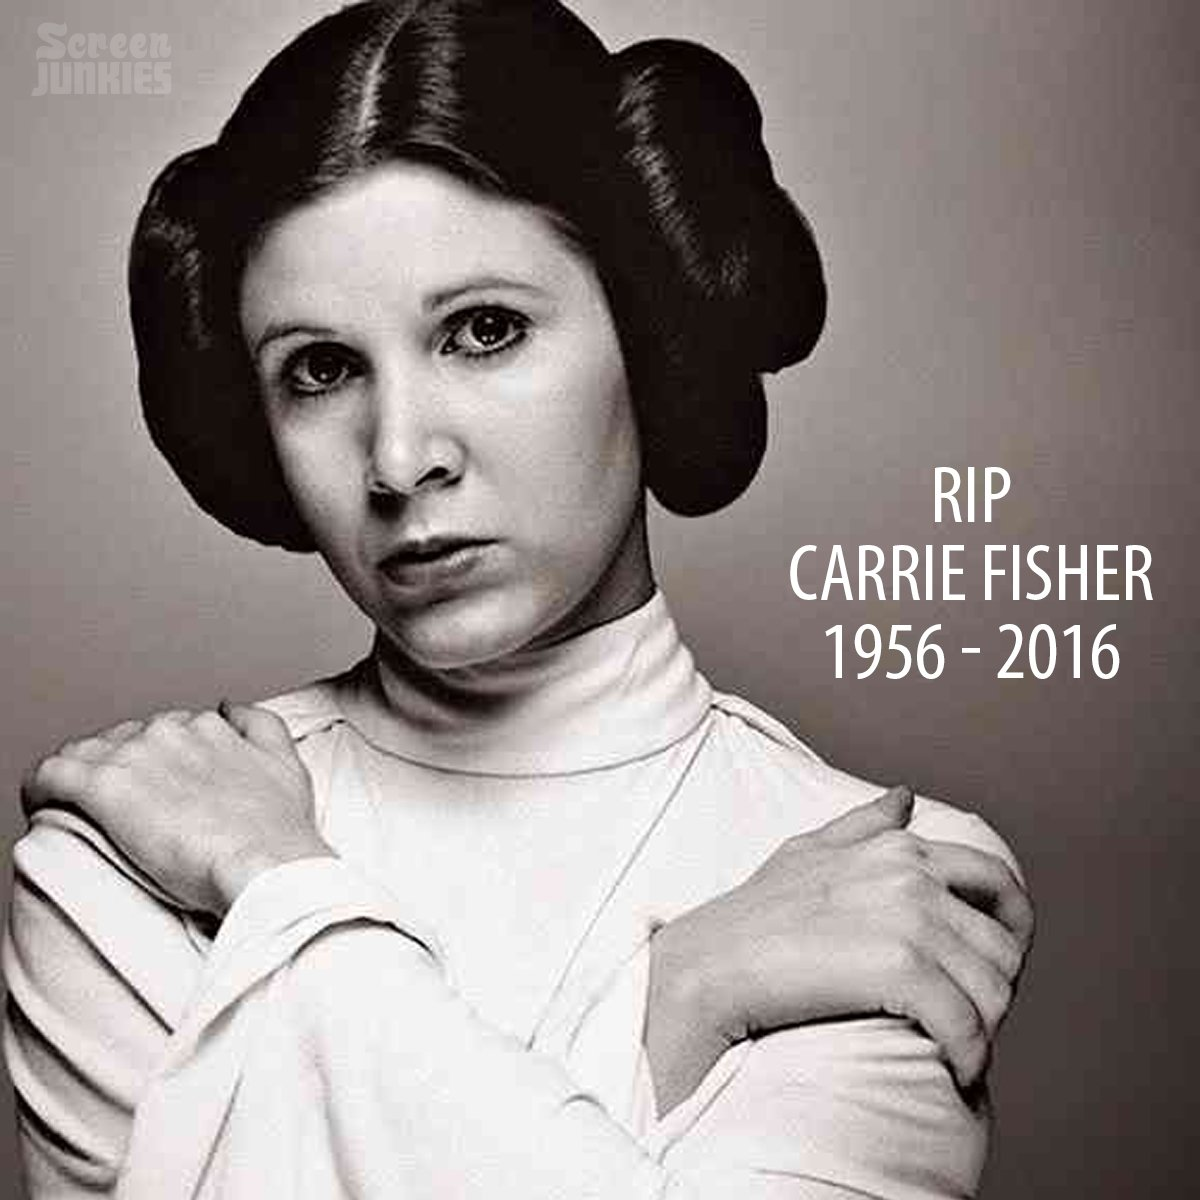 Today is a sad day for us all, Carrie Fisher is one with the force, and the force is with her. #RIPCarrieFisher https://t.co/uZ1uF9jBQP